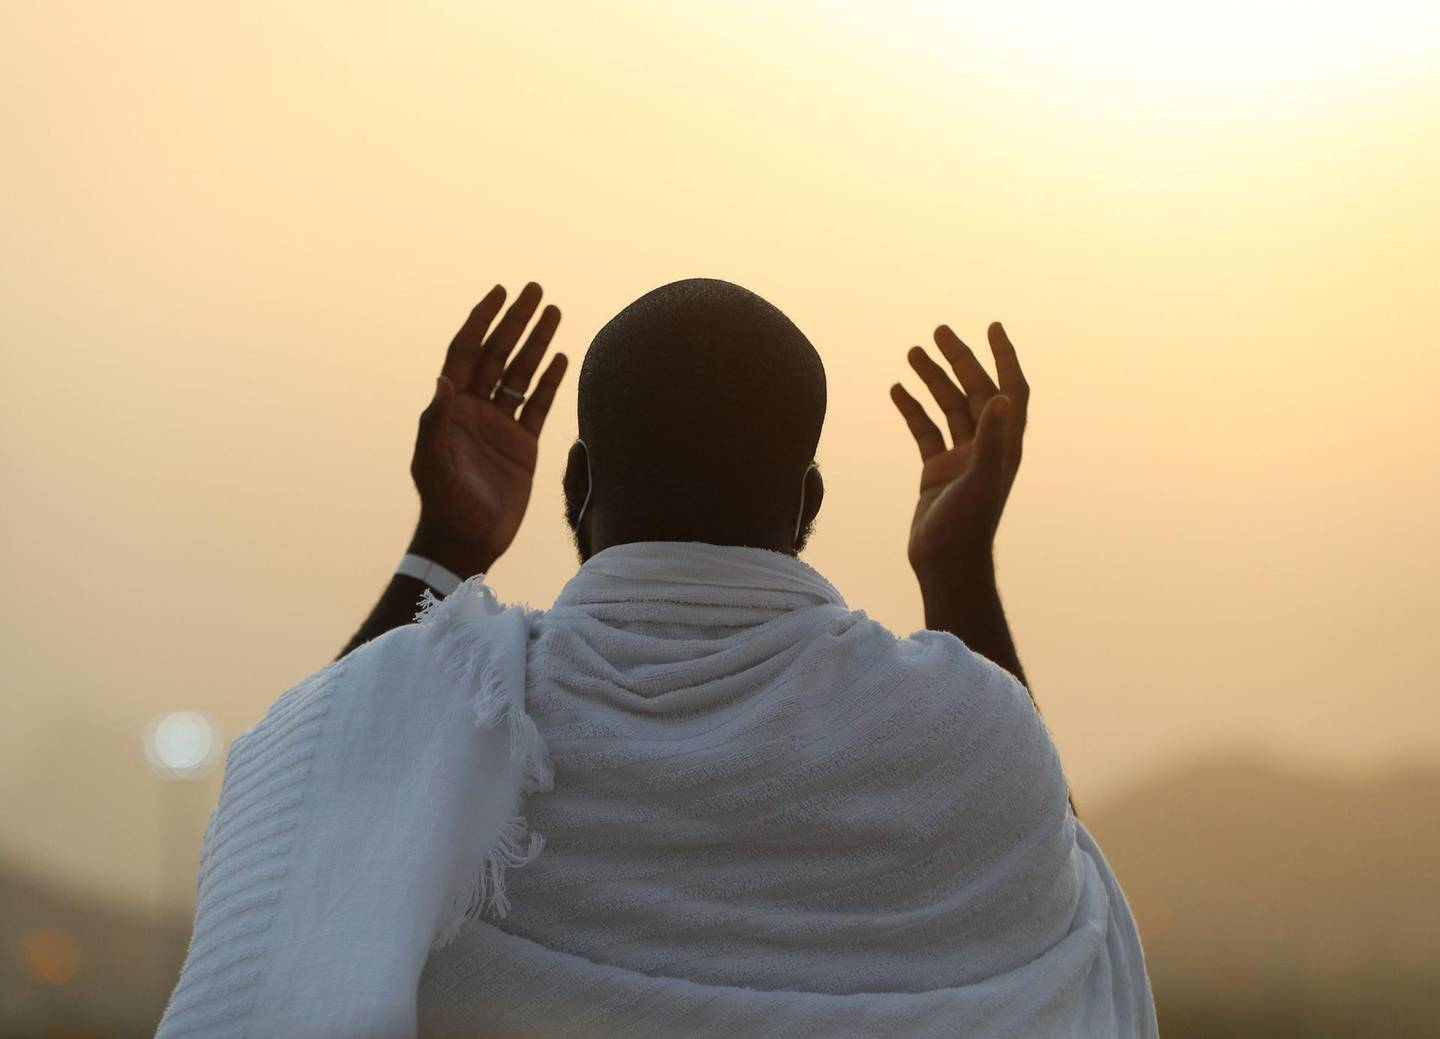 """A handout picture provided by Saudi Ministry of Media on July 30, 2020 shows a Mulism pilgrim praying on Mount Arafat, also known as Jabal al-Rahma (Mount of Mercy), southeast of the holy city of Mecca, during the climax of the Hajj pilgrimage amid the COVID-19 pandemic. Muslim pilgrims converged today on Saudi Arabia's Mount Arafat for the climax of this year's hajj, the smallest in modern times and a sharp contrast to the massive crowds of previous years. - === RESTRICTED TO EDITORIAL USE - MANDATORY CREDIT """"AFP PHOTO / HO / SAUDI MINISTRY OF MEDIA"""" - NO MARKETING NO ADVERTISING CAMPAIGNS - DISTRIBUTED AS A SERVICE TO CLIENTS ===  / AFP / Saudi Ministry of Media / Saudi Ministry of Media / STR / === RESTRICTED TO EDITORIAL USE - MANDATORY CREDIT """"AFP PHOTO / HO / SAUDI MINISTRY OF MEDIA"""" - NO MARKETING NO ADVERTISING CAMPAIGNS - DISTRIBUTED AS A SERVICE TO CLIENTS ==="""